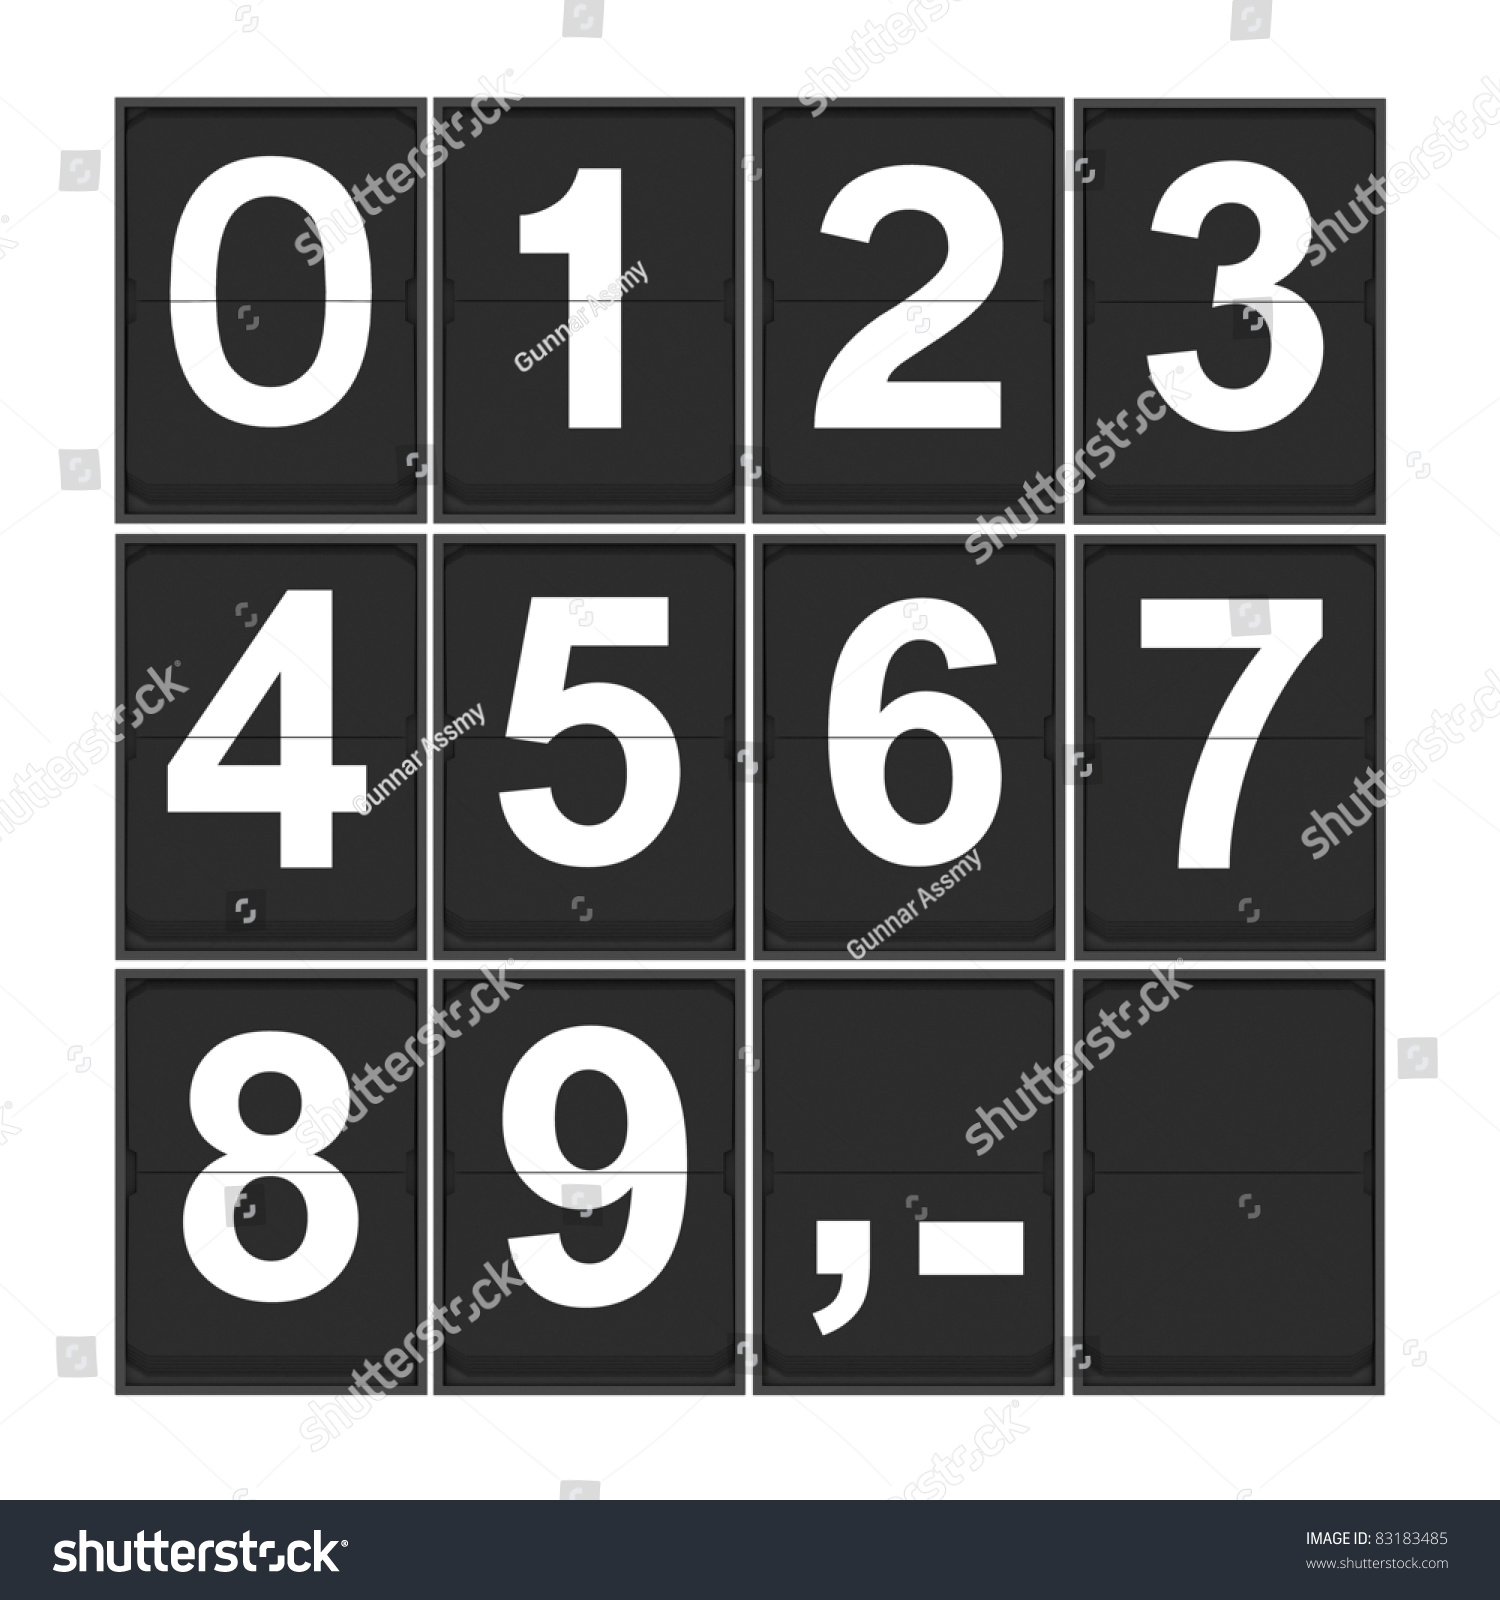 Magnificent Clock Number Template Elaboration - Documentation ...